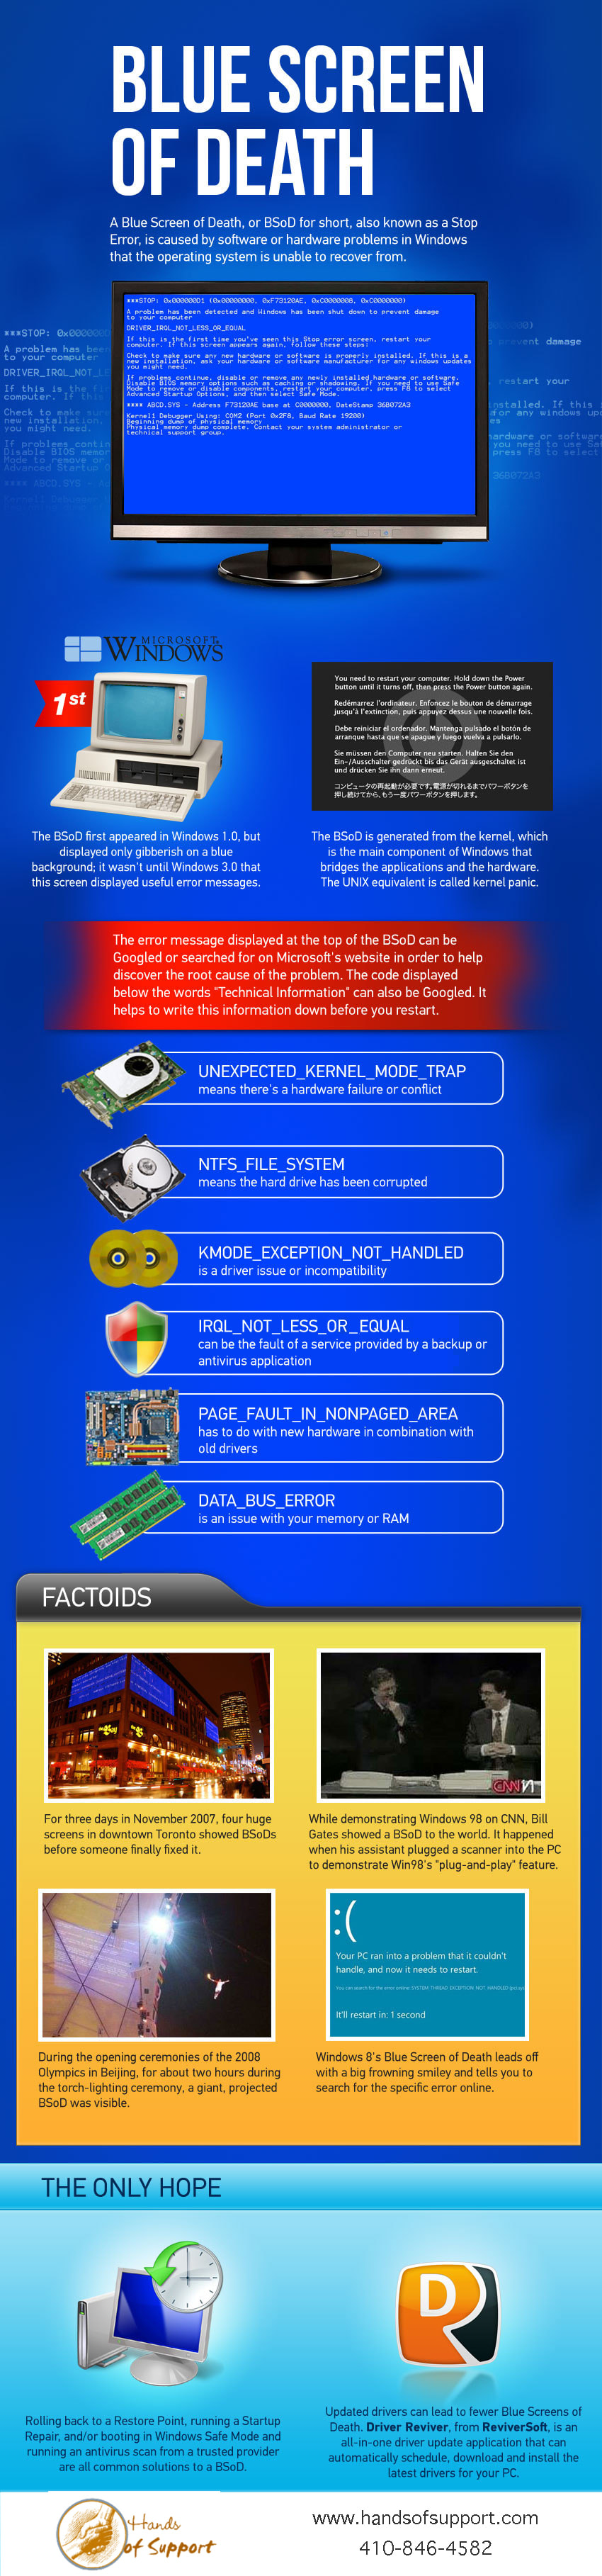 Almost all of us that have used Windows PCs have experienced the Blue Screen of Death, that error-message filled screen that halts the PC and is so unhelpful. Well, here's an amazing infographic we���ve put together that explains all about these wondrous error screens, from facts about Windows BSoDs, to famous BSoDs in history, to what the error messages mean.